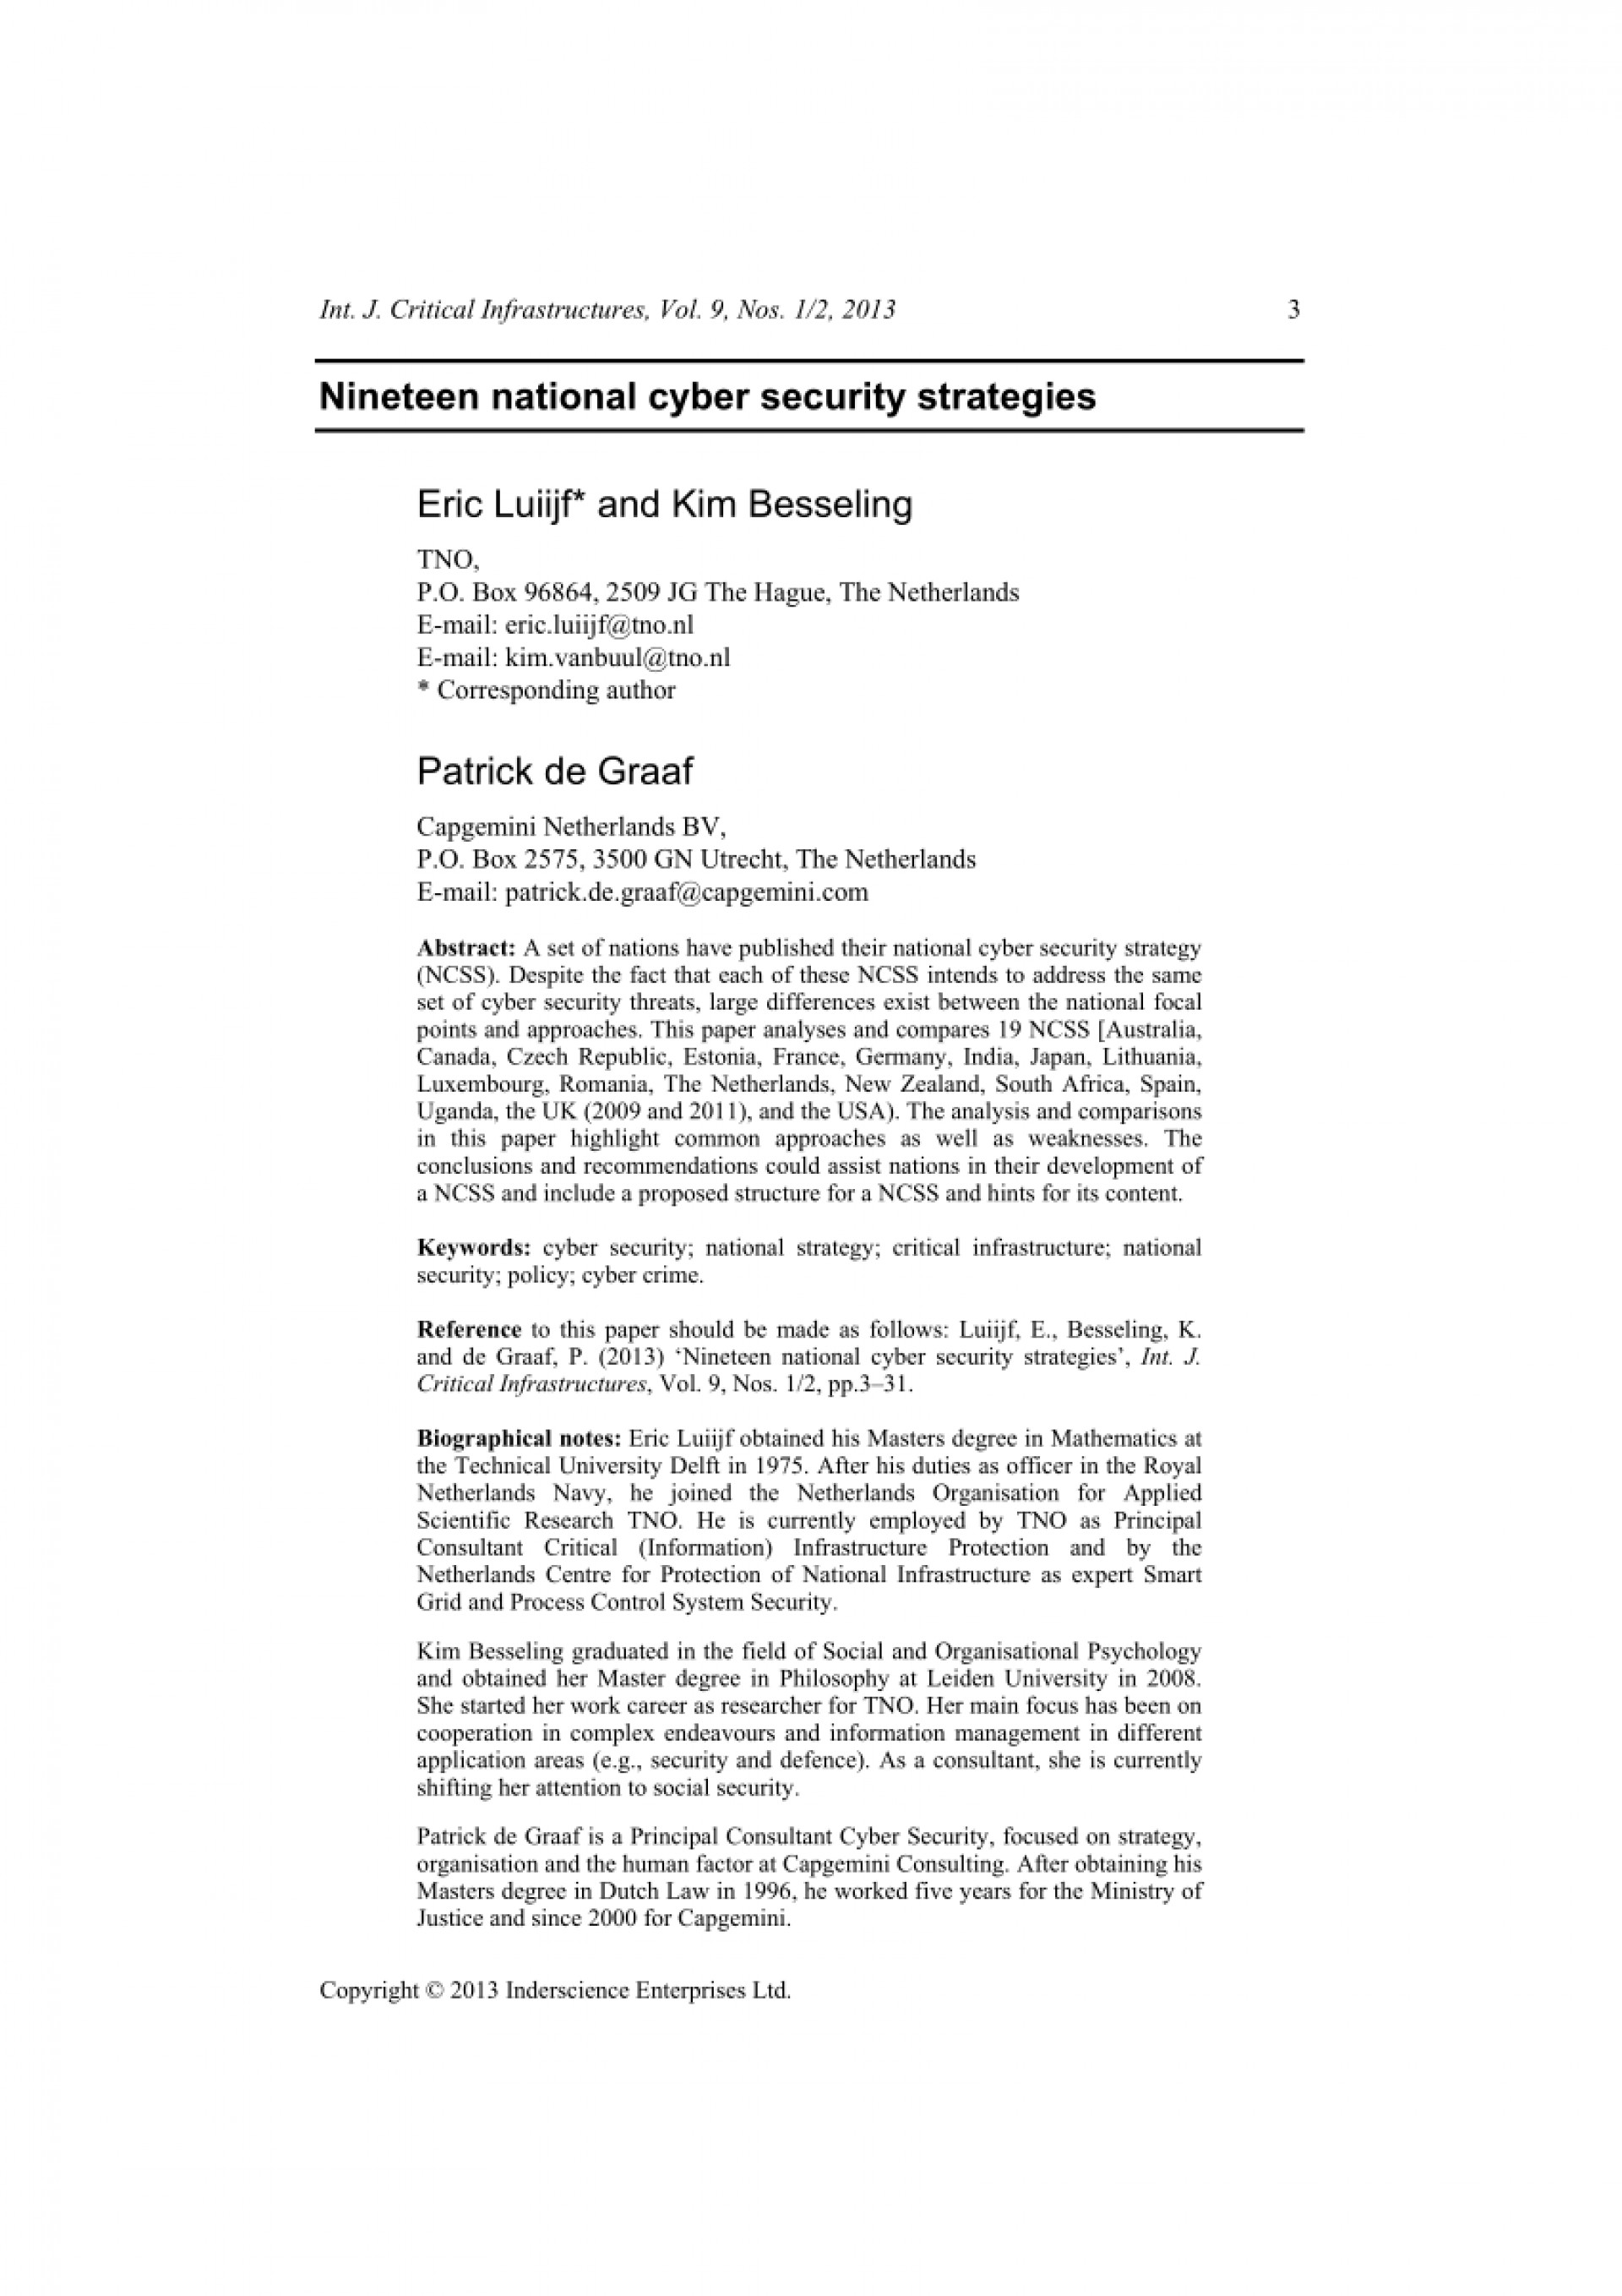 019 Cyber Security Research Paper Dreaded 2019 Papers 2018 1920